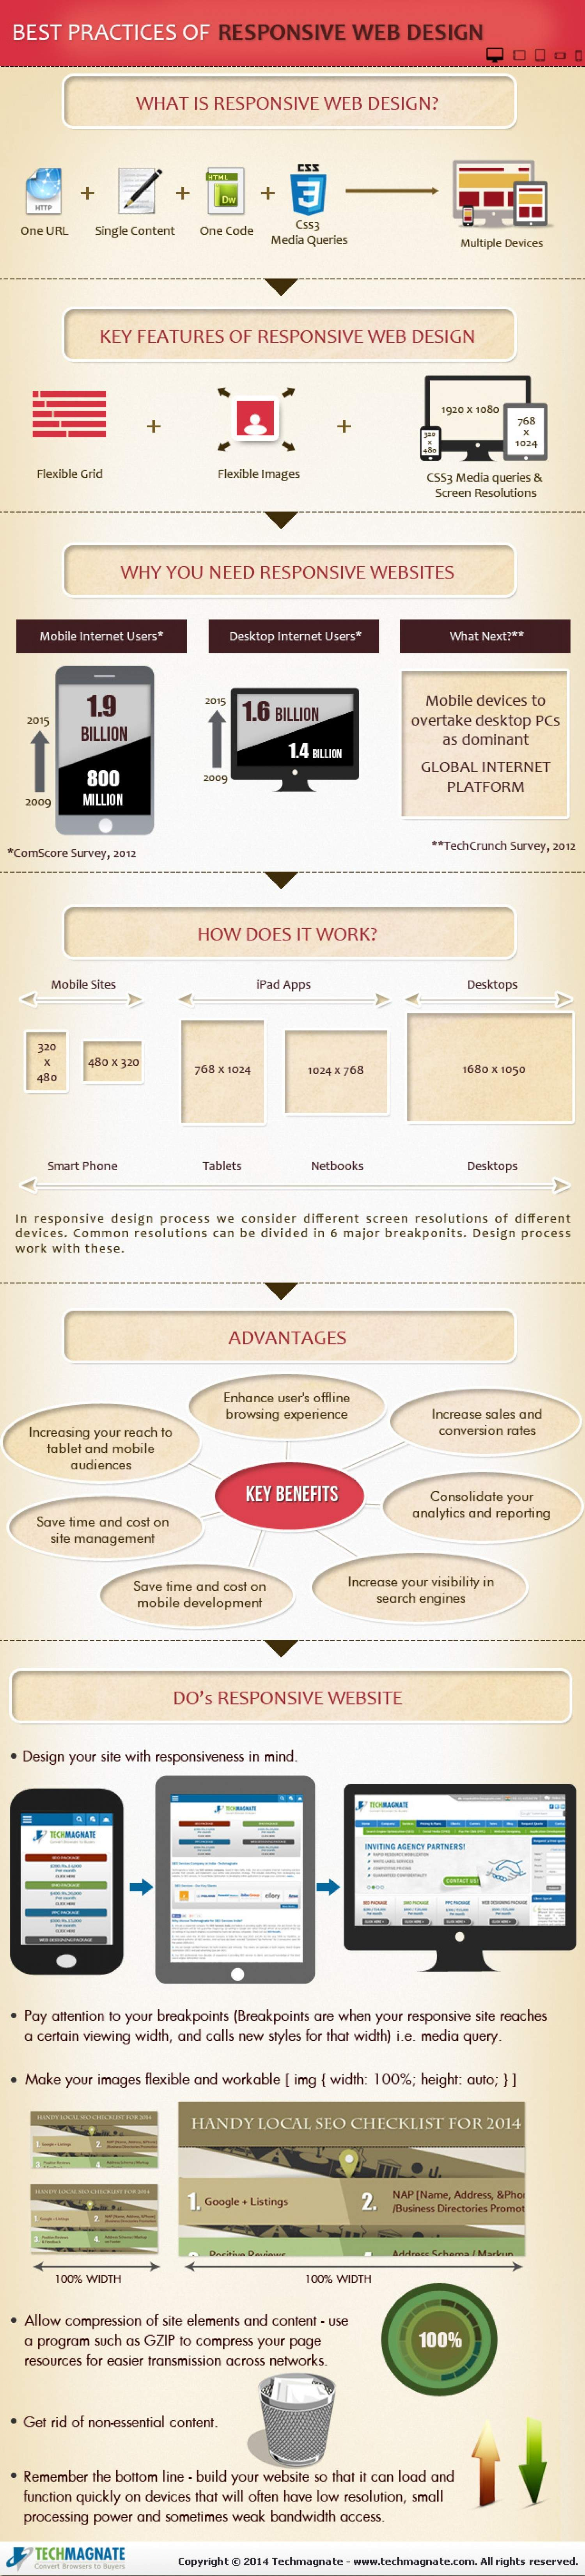 best practices of responsive web design infographic